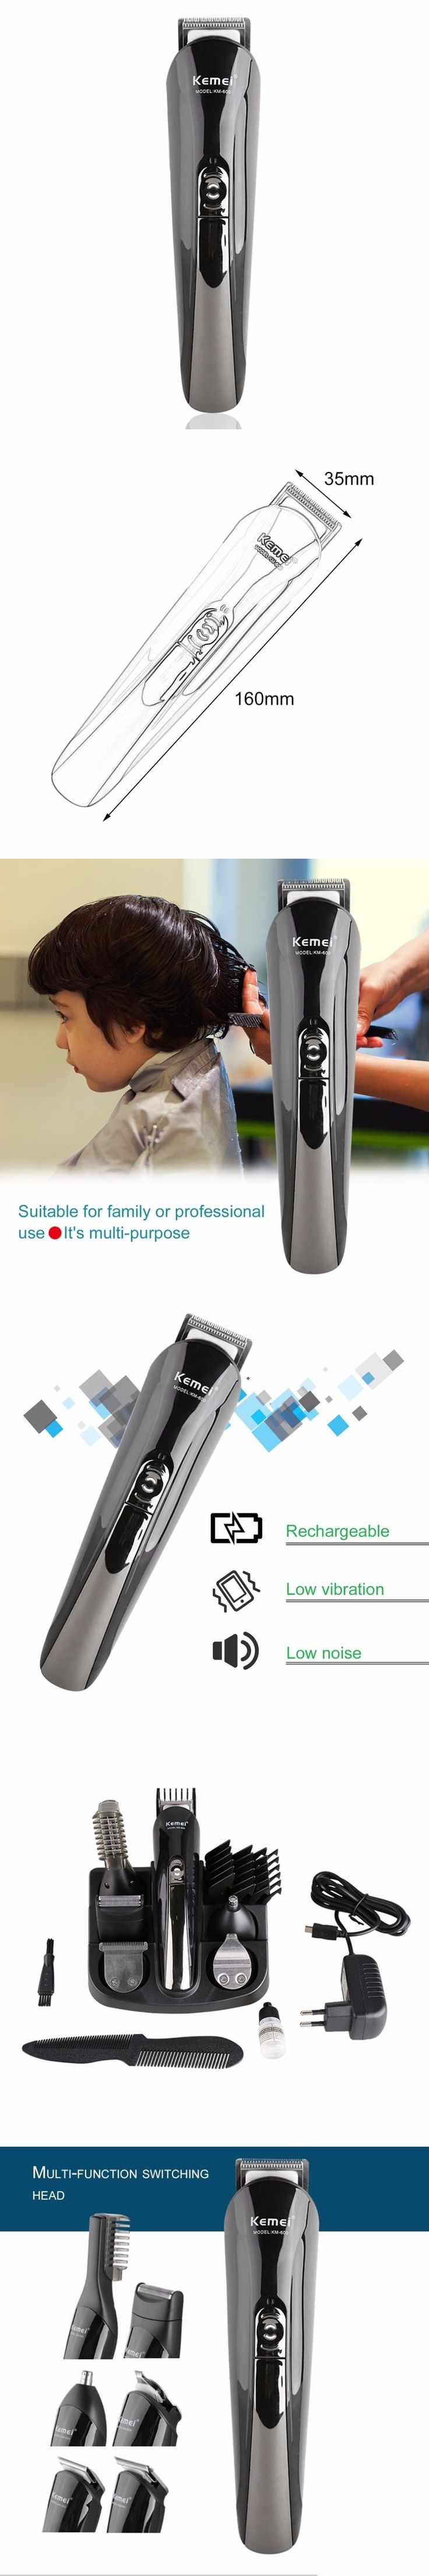 KEMEI KM-600 Household Use Professional Hair Clipper Grooming Kit Electric Rechargeable Men Hair Trimmer Shaver Top Sale